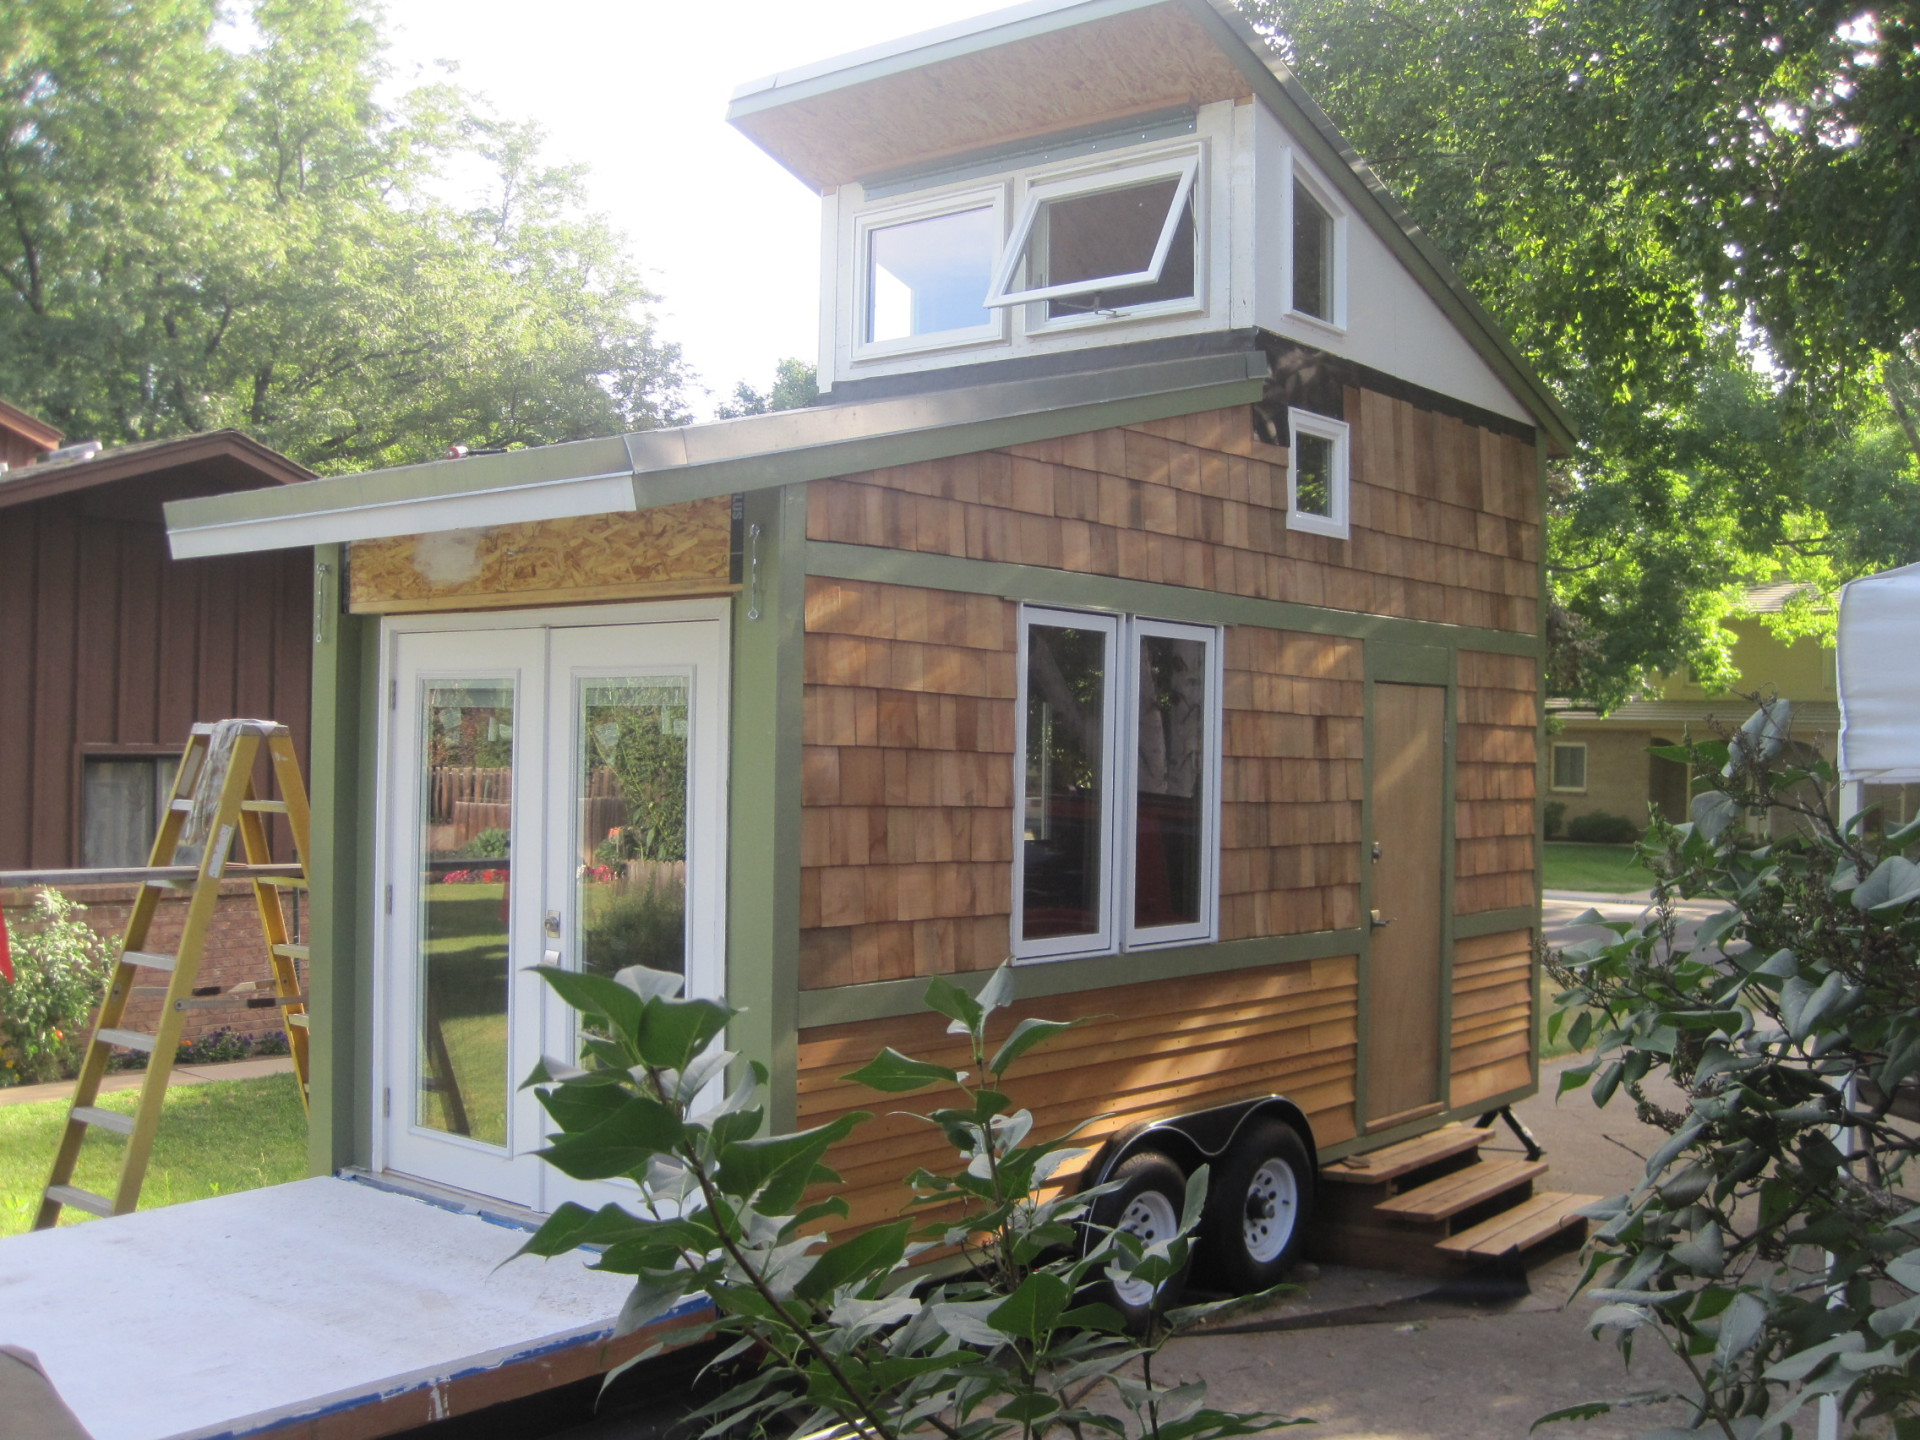 Picture of the Rear Right Corner View of the tiny house known as The Band Wagon. Showing the Deck and French Doors as well as the windows and side door.